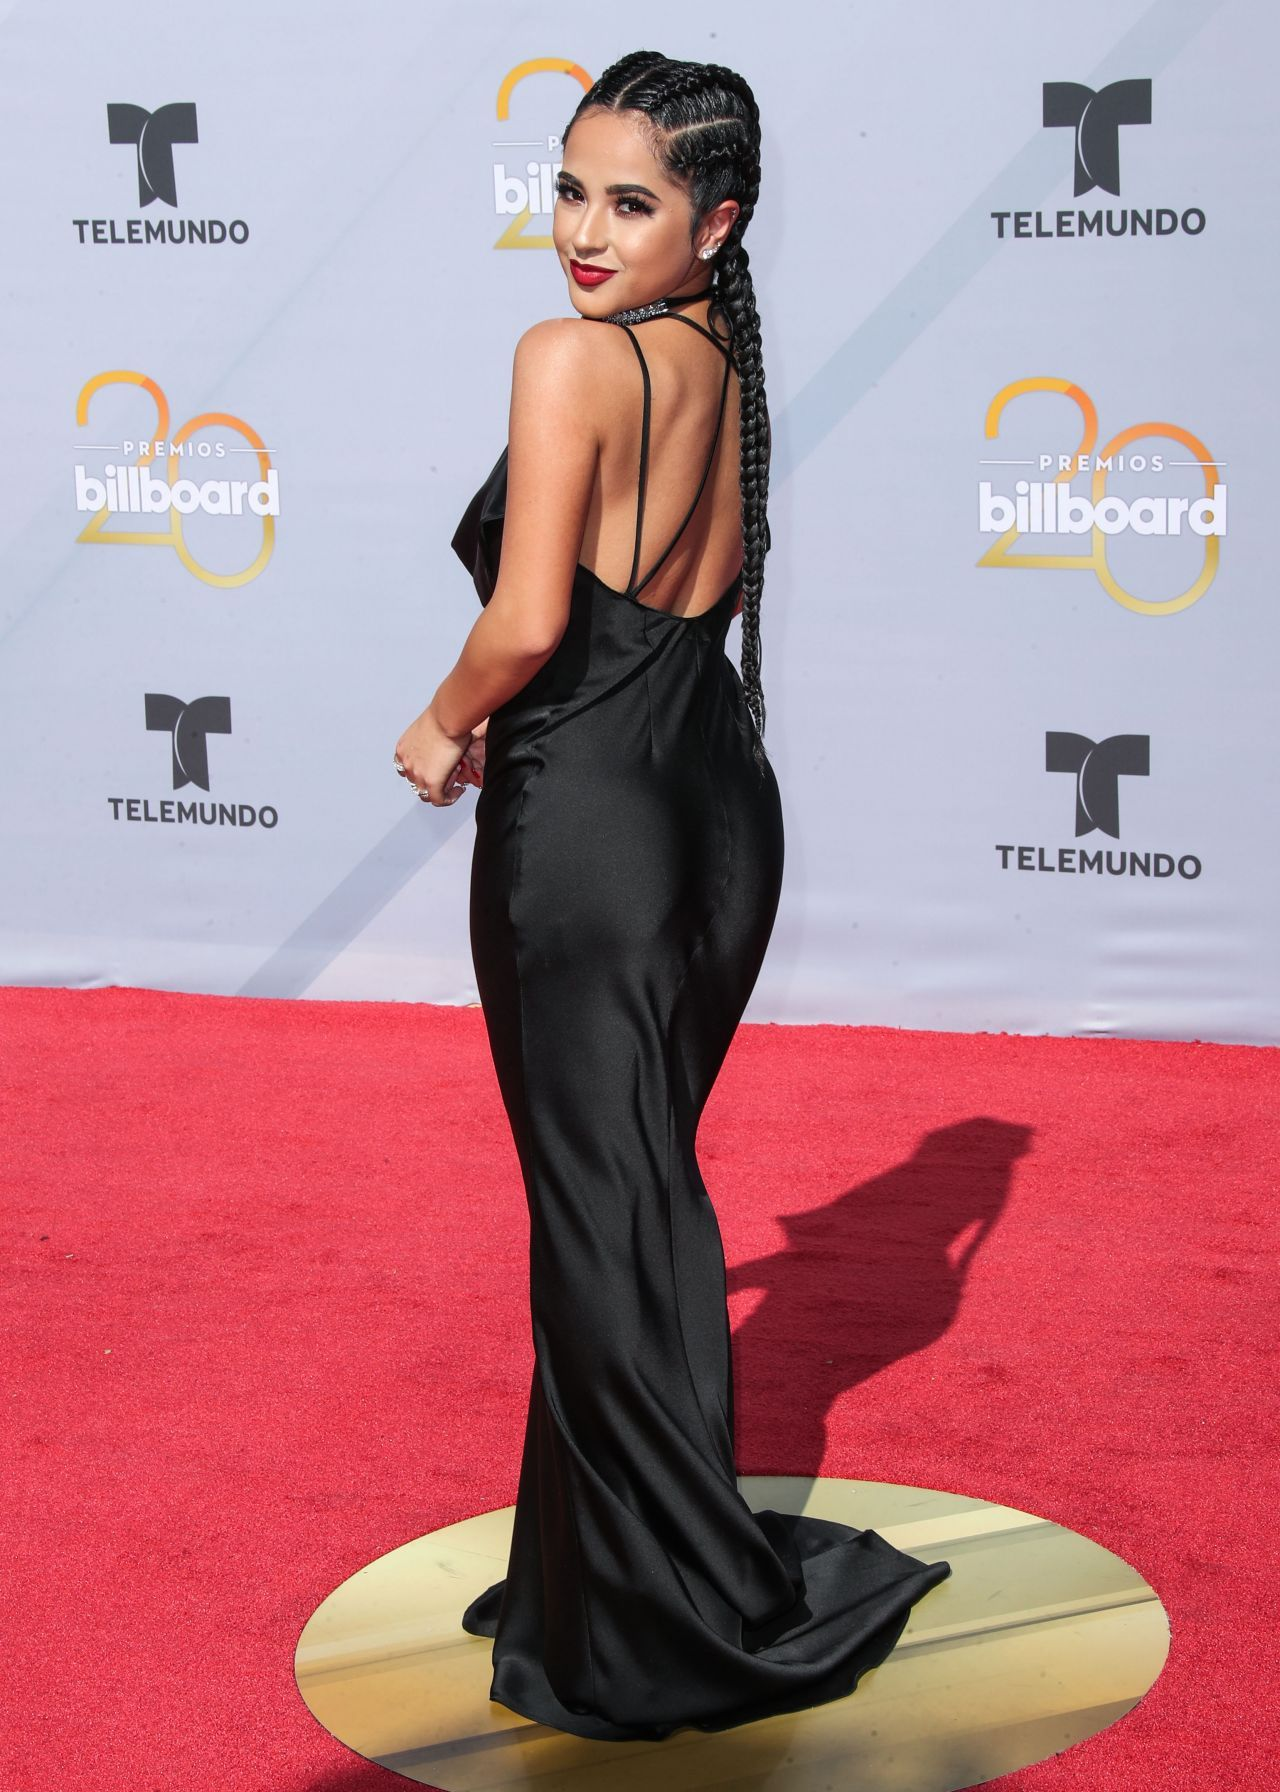 Alfombras Publicitarias Becky G At The 2018 Billboard Latin Music Awards In Las